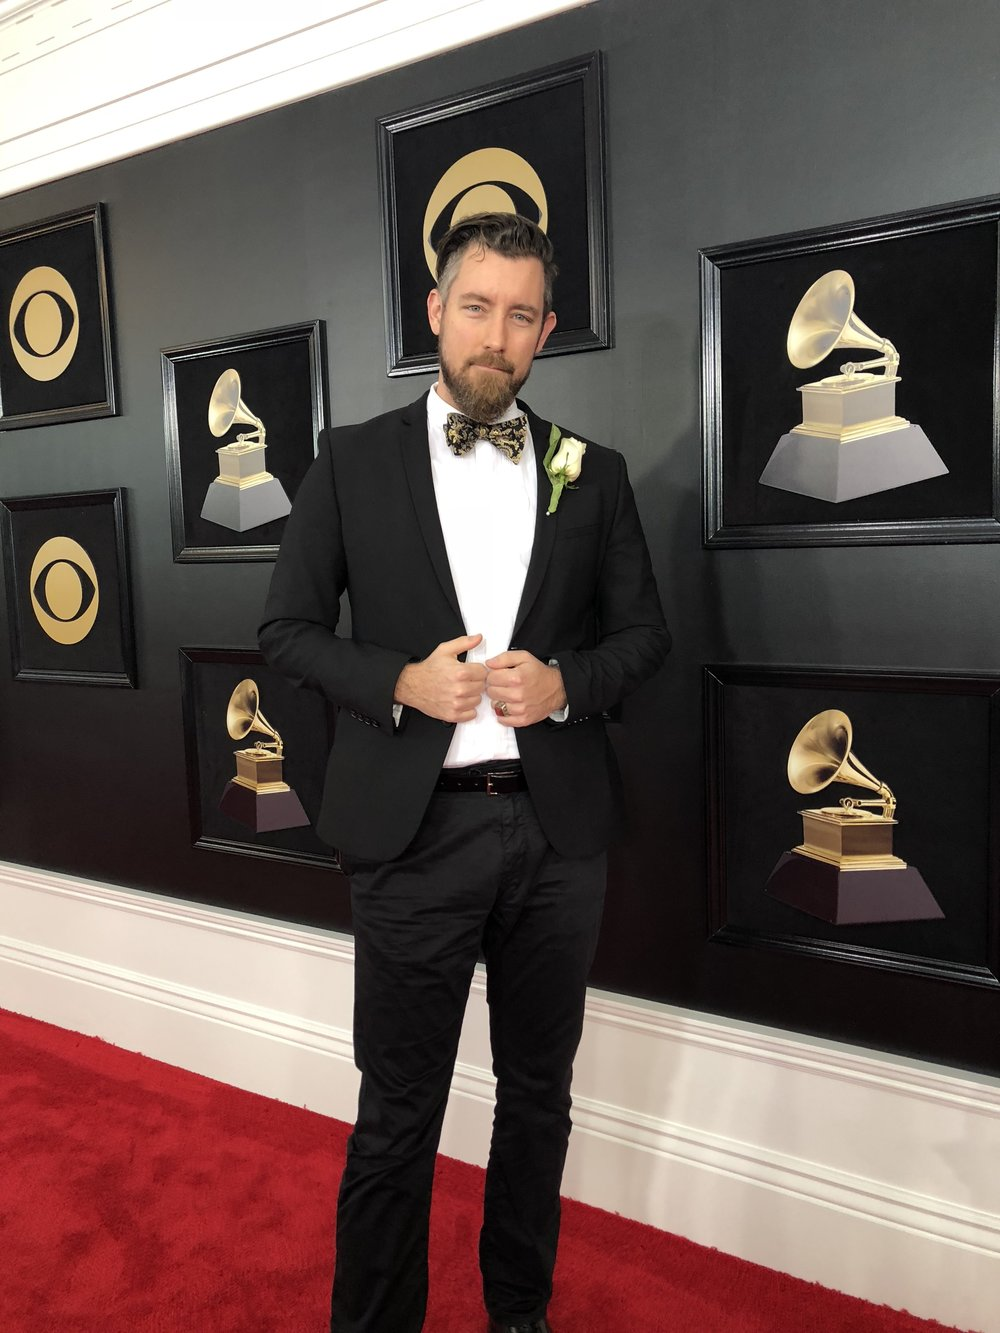 Chandler Poling at the 2018 Grammy Awards in New York City. Source: White Bear PR